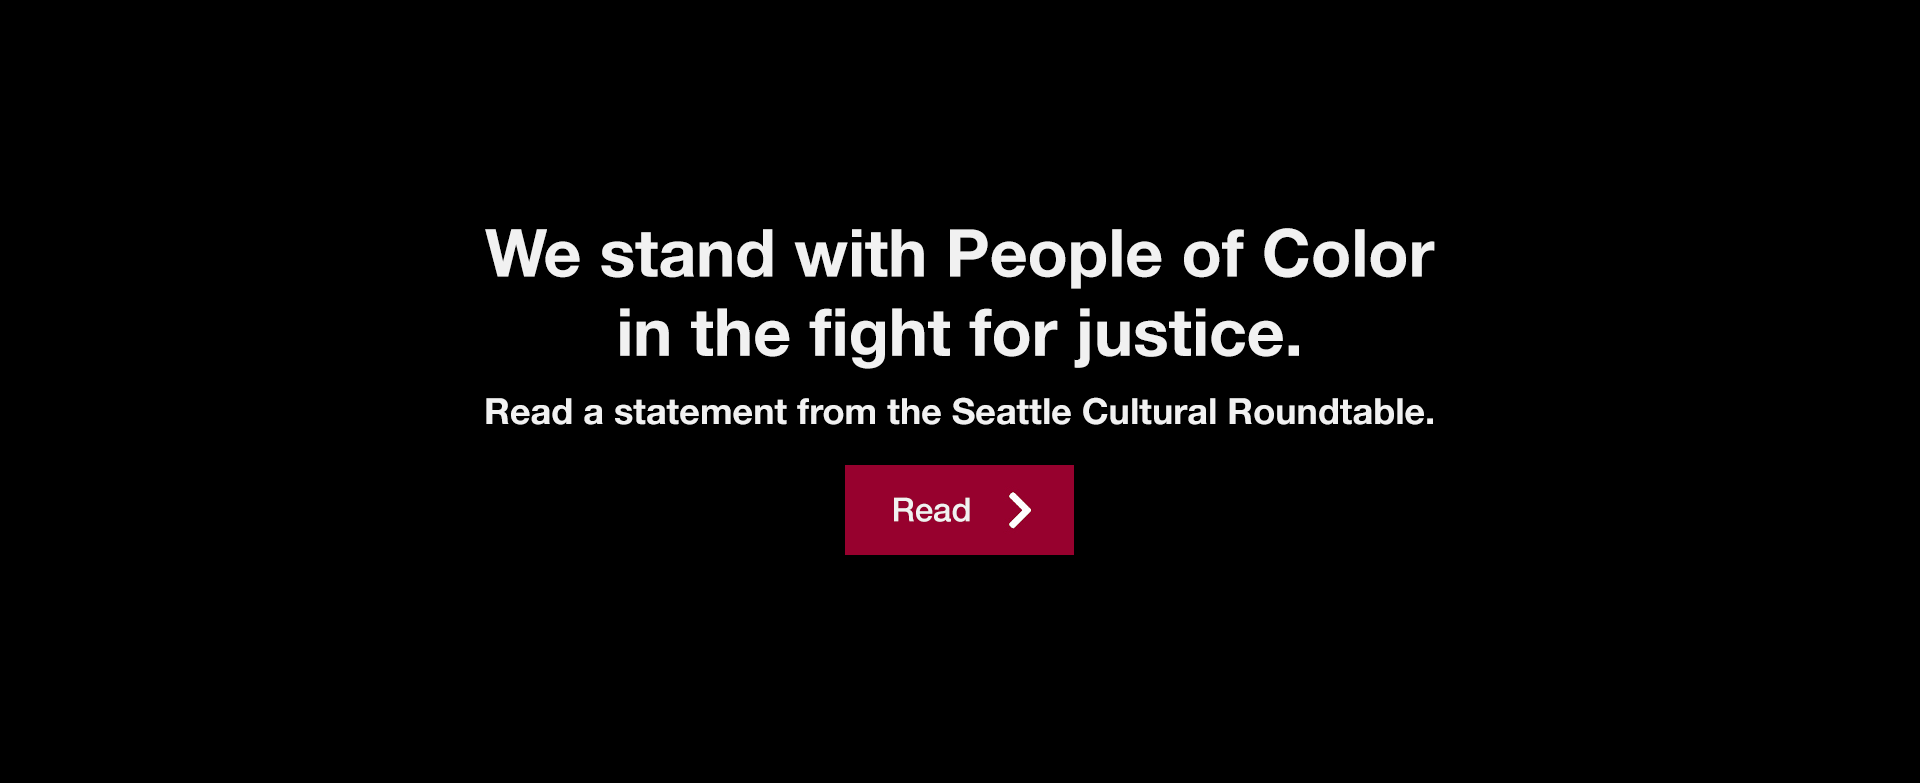 We stand with People of Color in the fight for justice. Read a statement from the Seattle Cultural Roundtable.